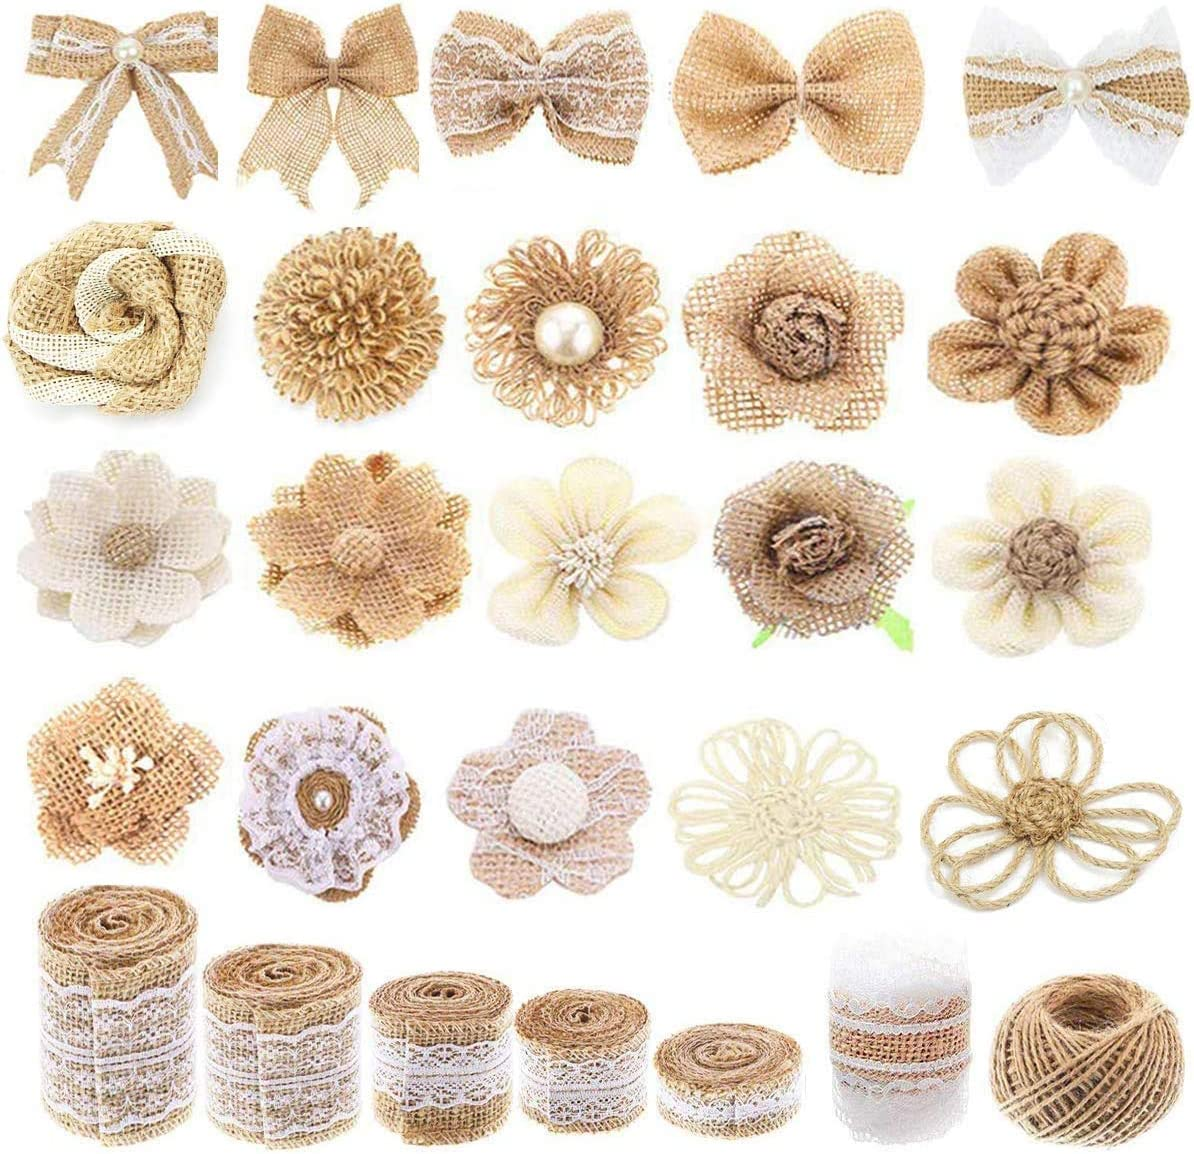 FiveRen 27 PCS Jute Burlap Flowers Set, Ribbon Roll Rustic Flower Bowknot and Twine for Party Wedding Thanksgiving Christmas Craft Wreath Decor